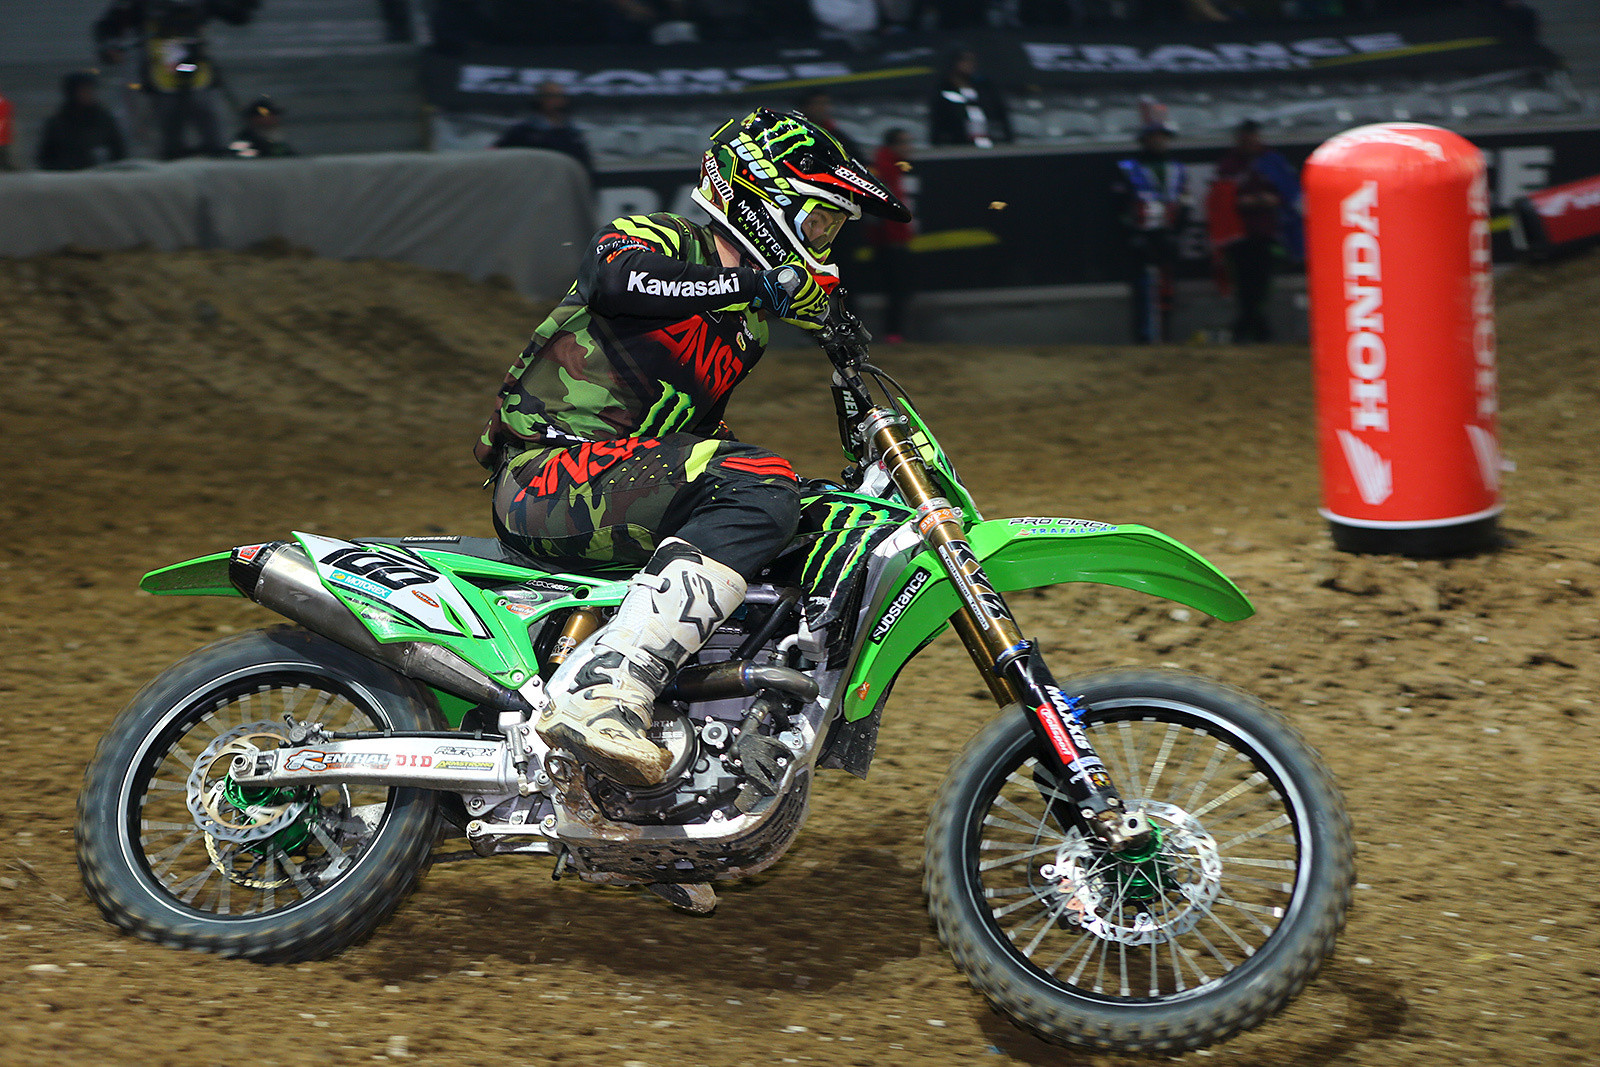 Tommy Searle - Photo Gallery: Paris-Lille Supercross, Day 2 - Motocross Pictures - Vital MX